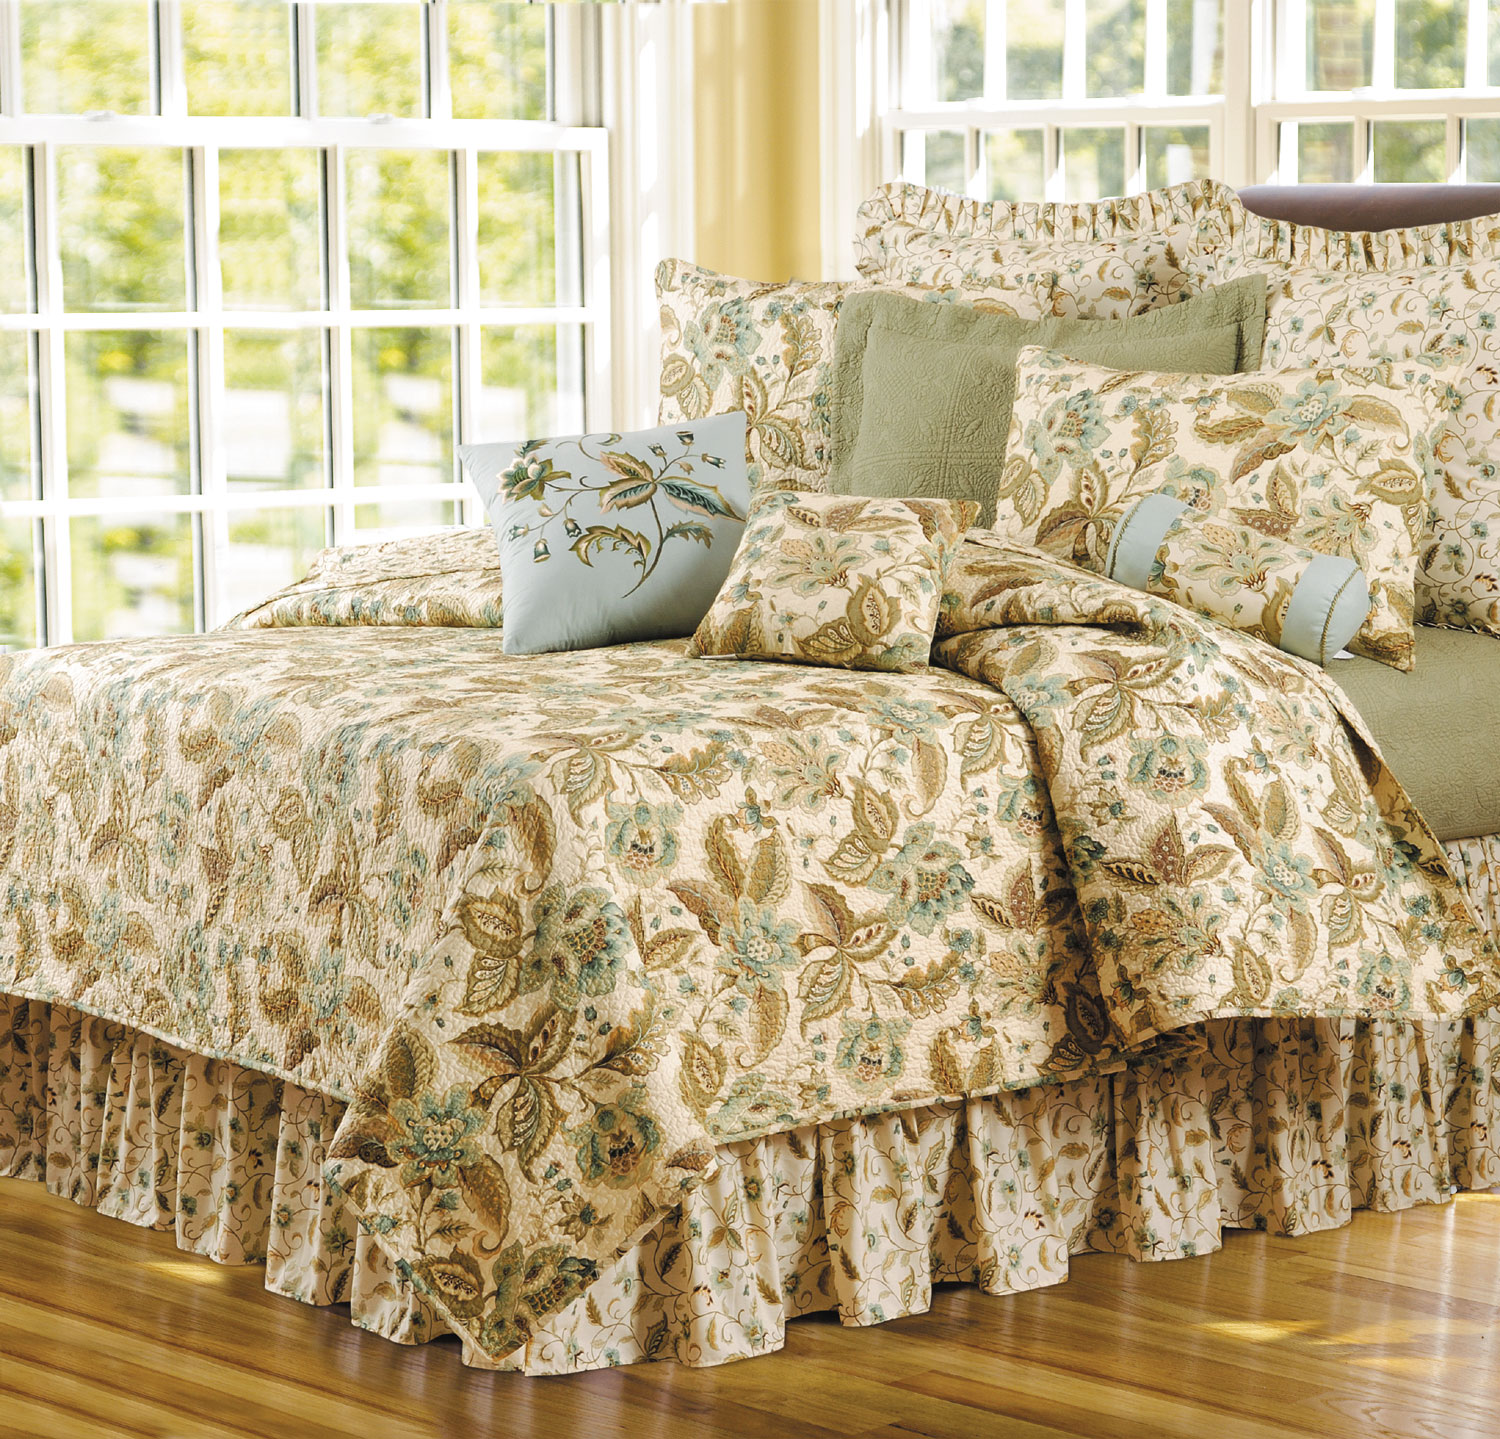 Amelia Blue By C Amp F Quilts Beddingsuperstore Com